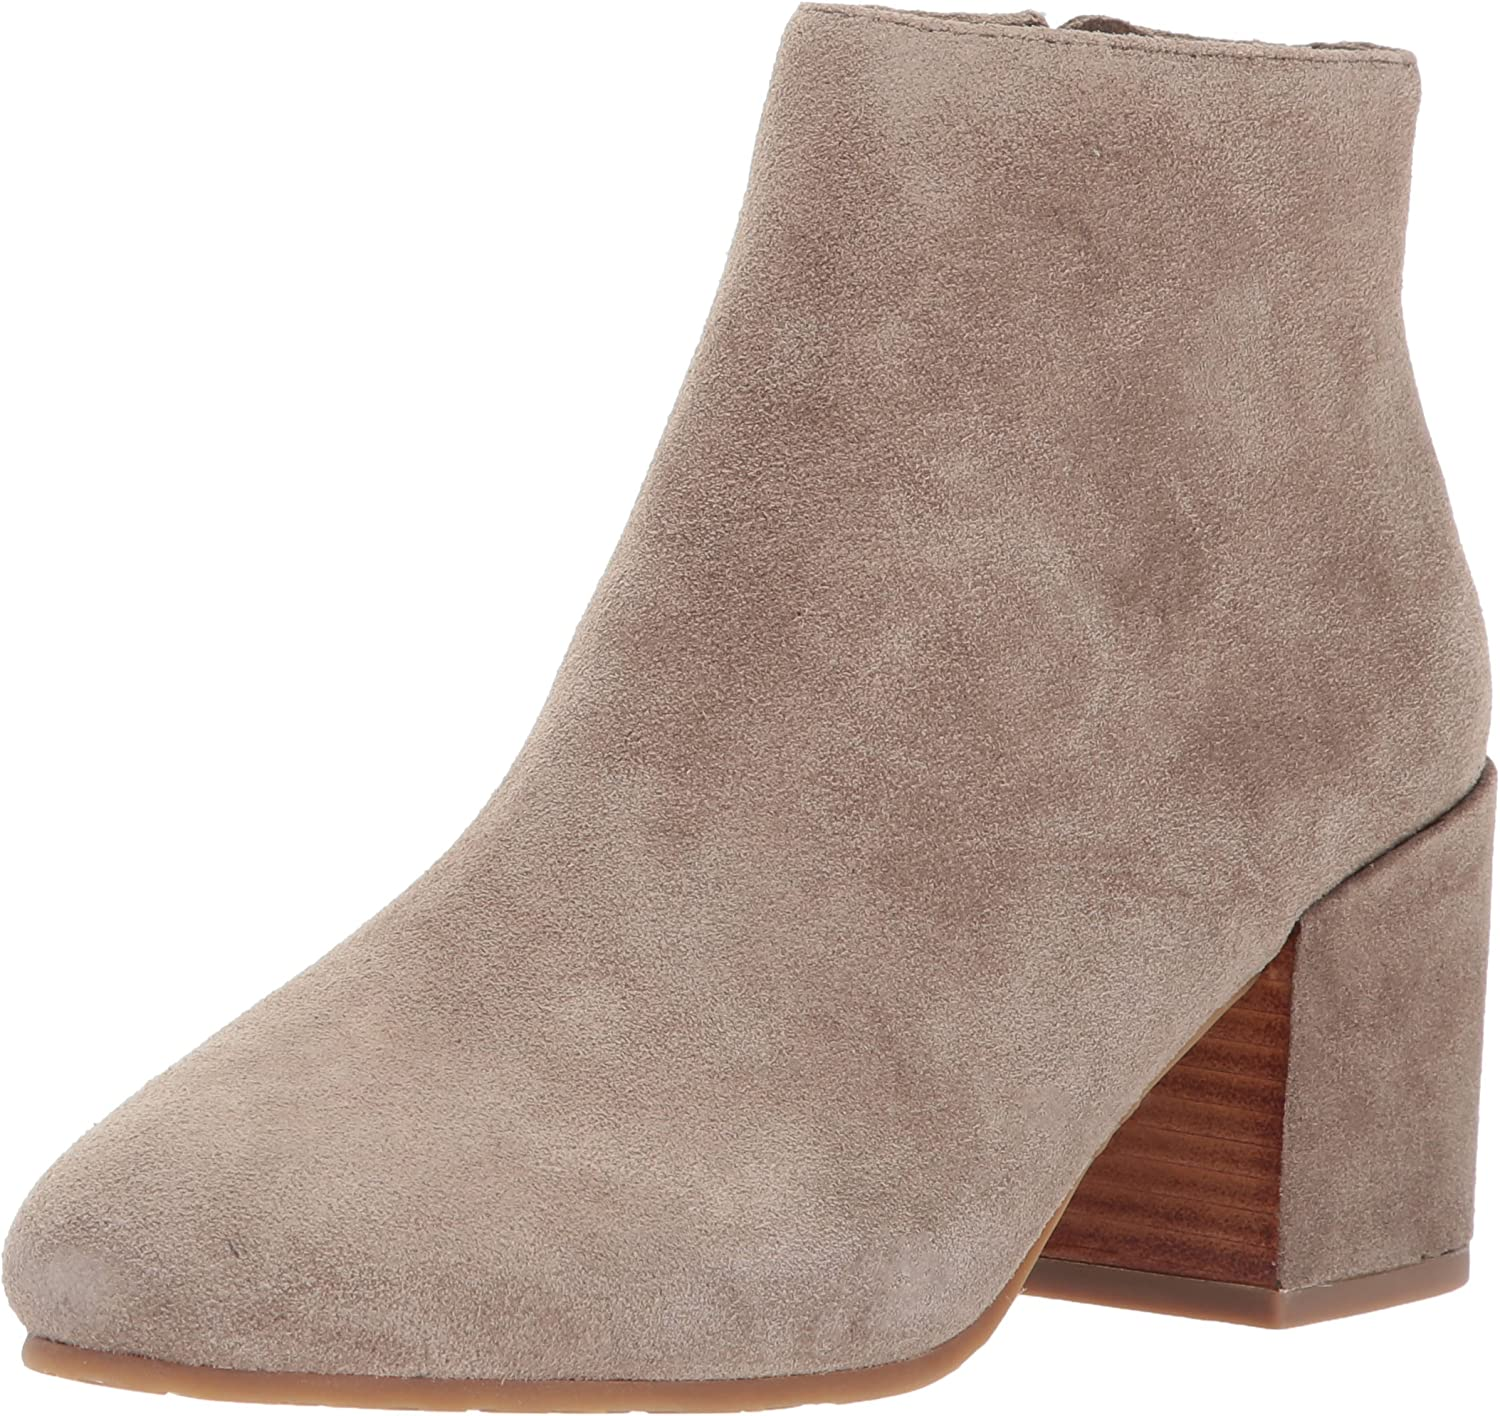 Gentle Souls Women's Blaise Ankle Bootie With Side Zip, Covered Block Heel Suede Ankle Boots